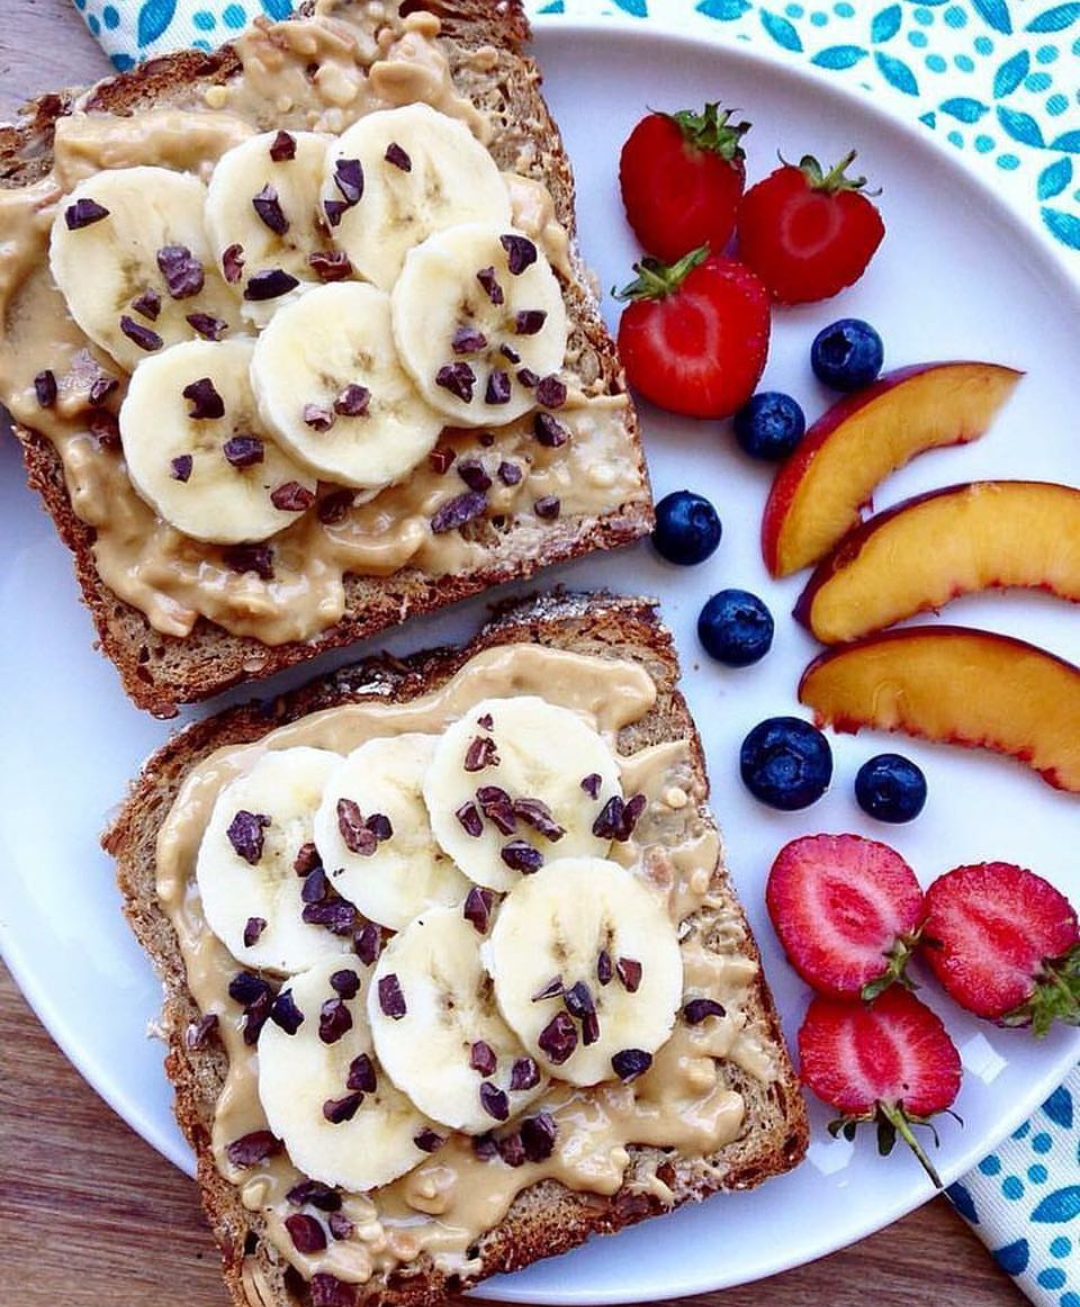 peanut butter,banana,wholewheat bread,toast.healthy breakfast,breakfast ideas